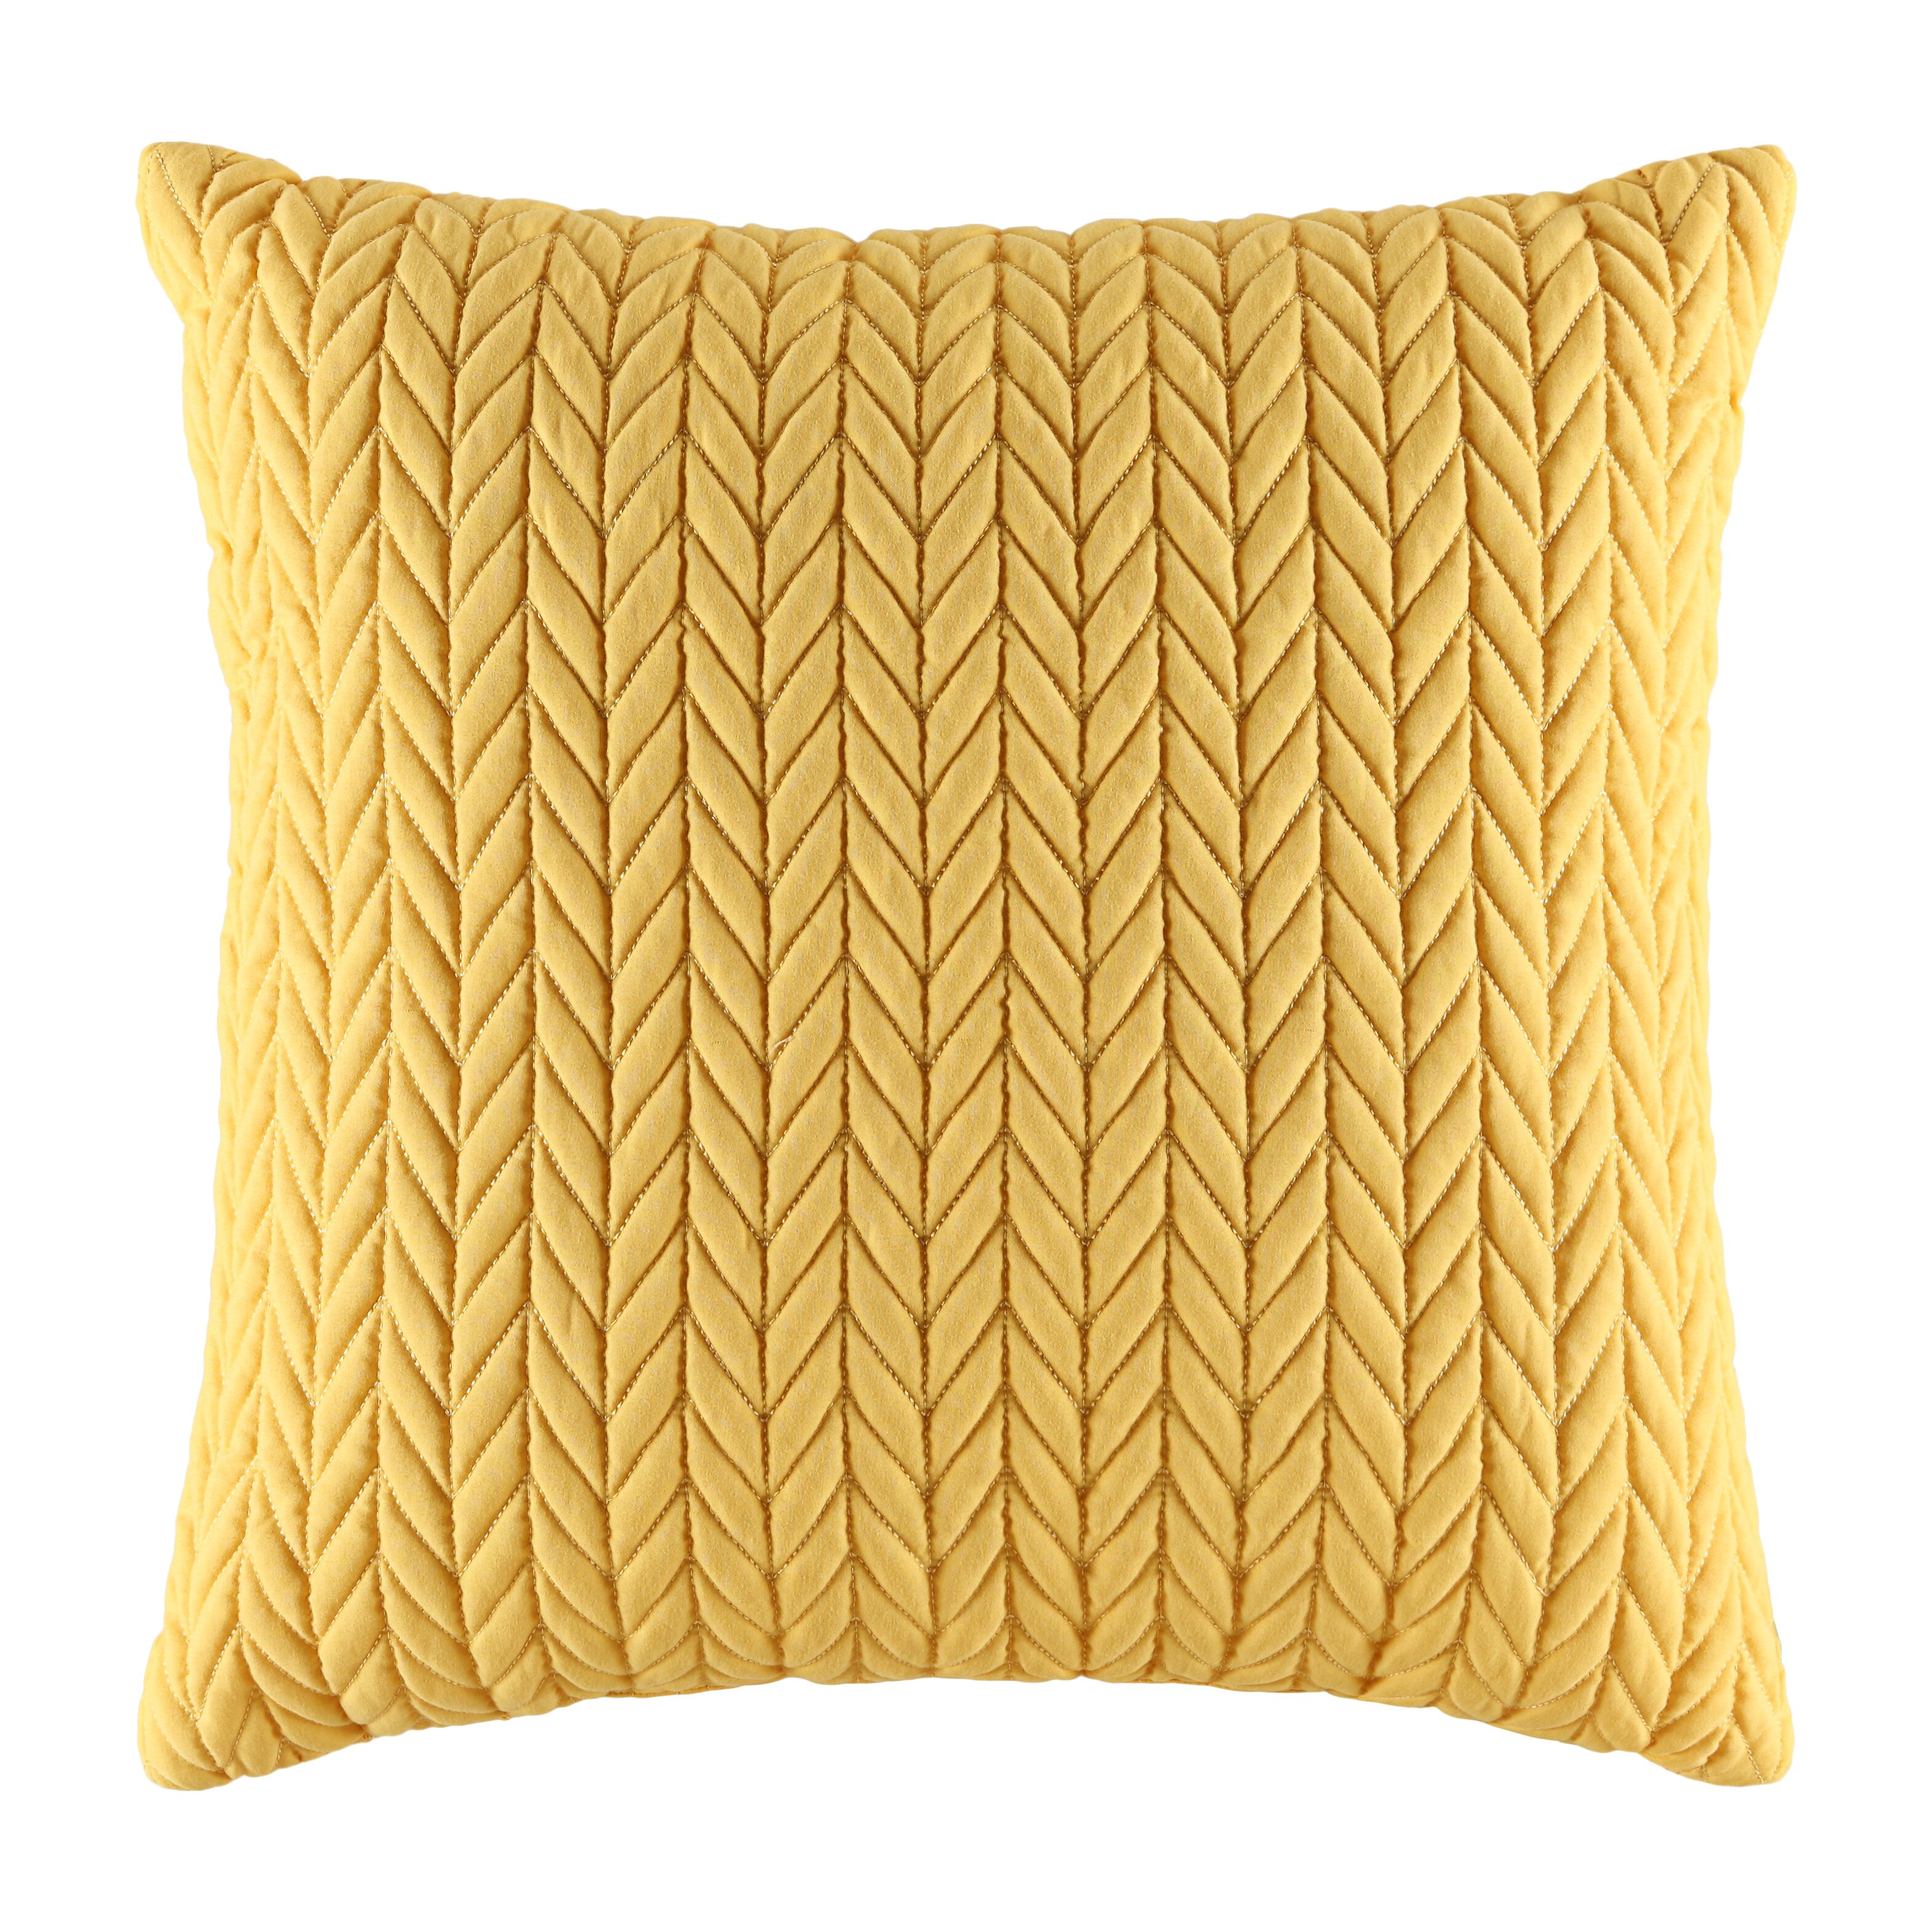 Queen Throw Pillow : Q by Queen Street New York Catori Throw Pillow Wayfair